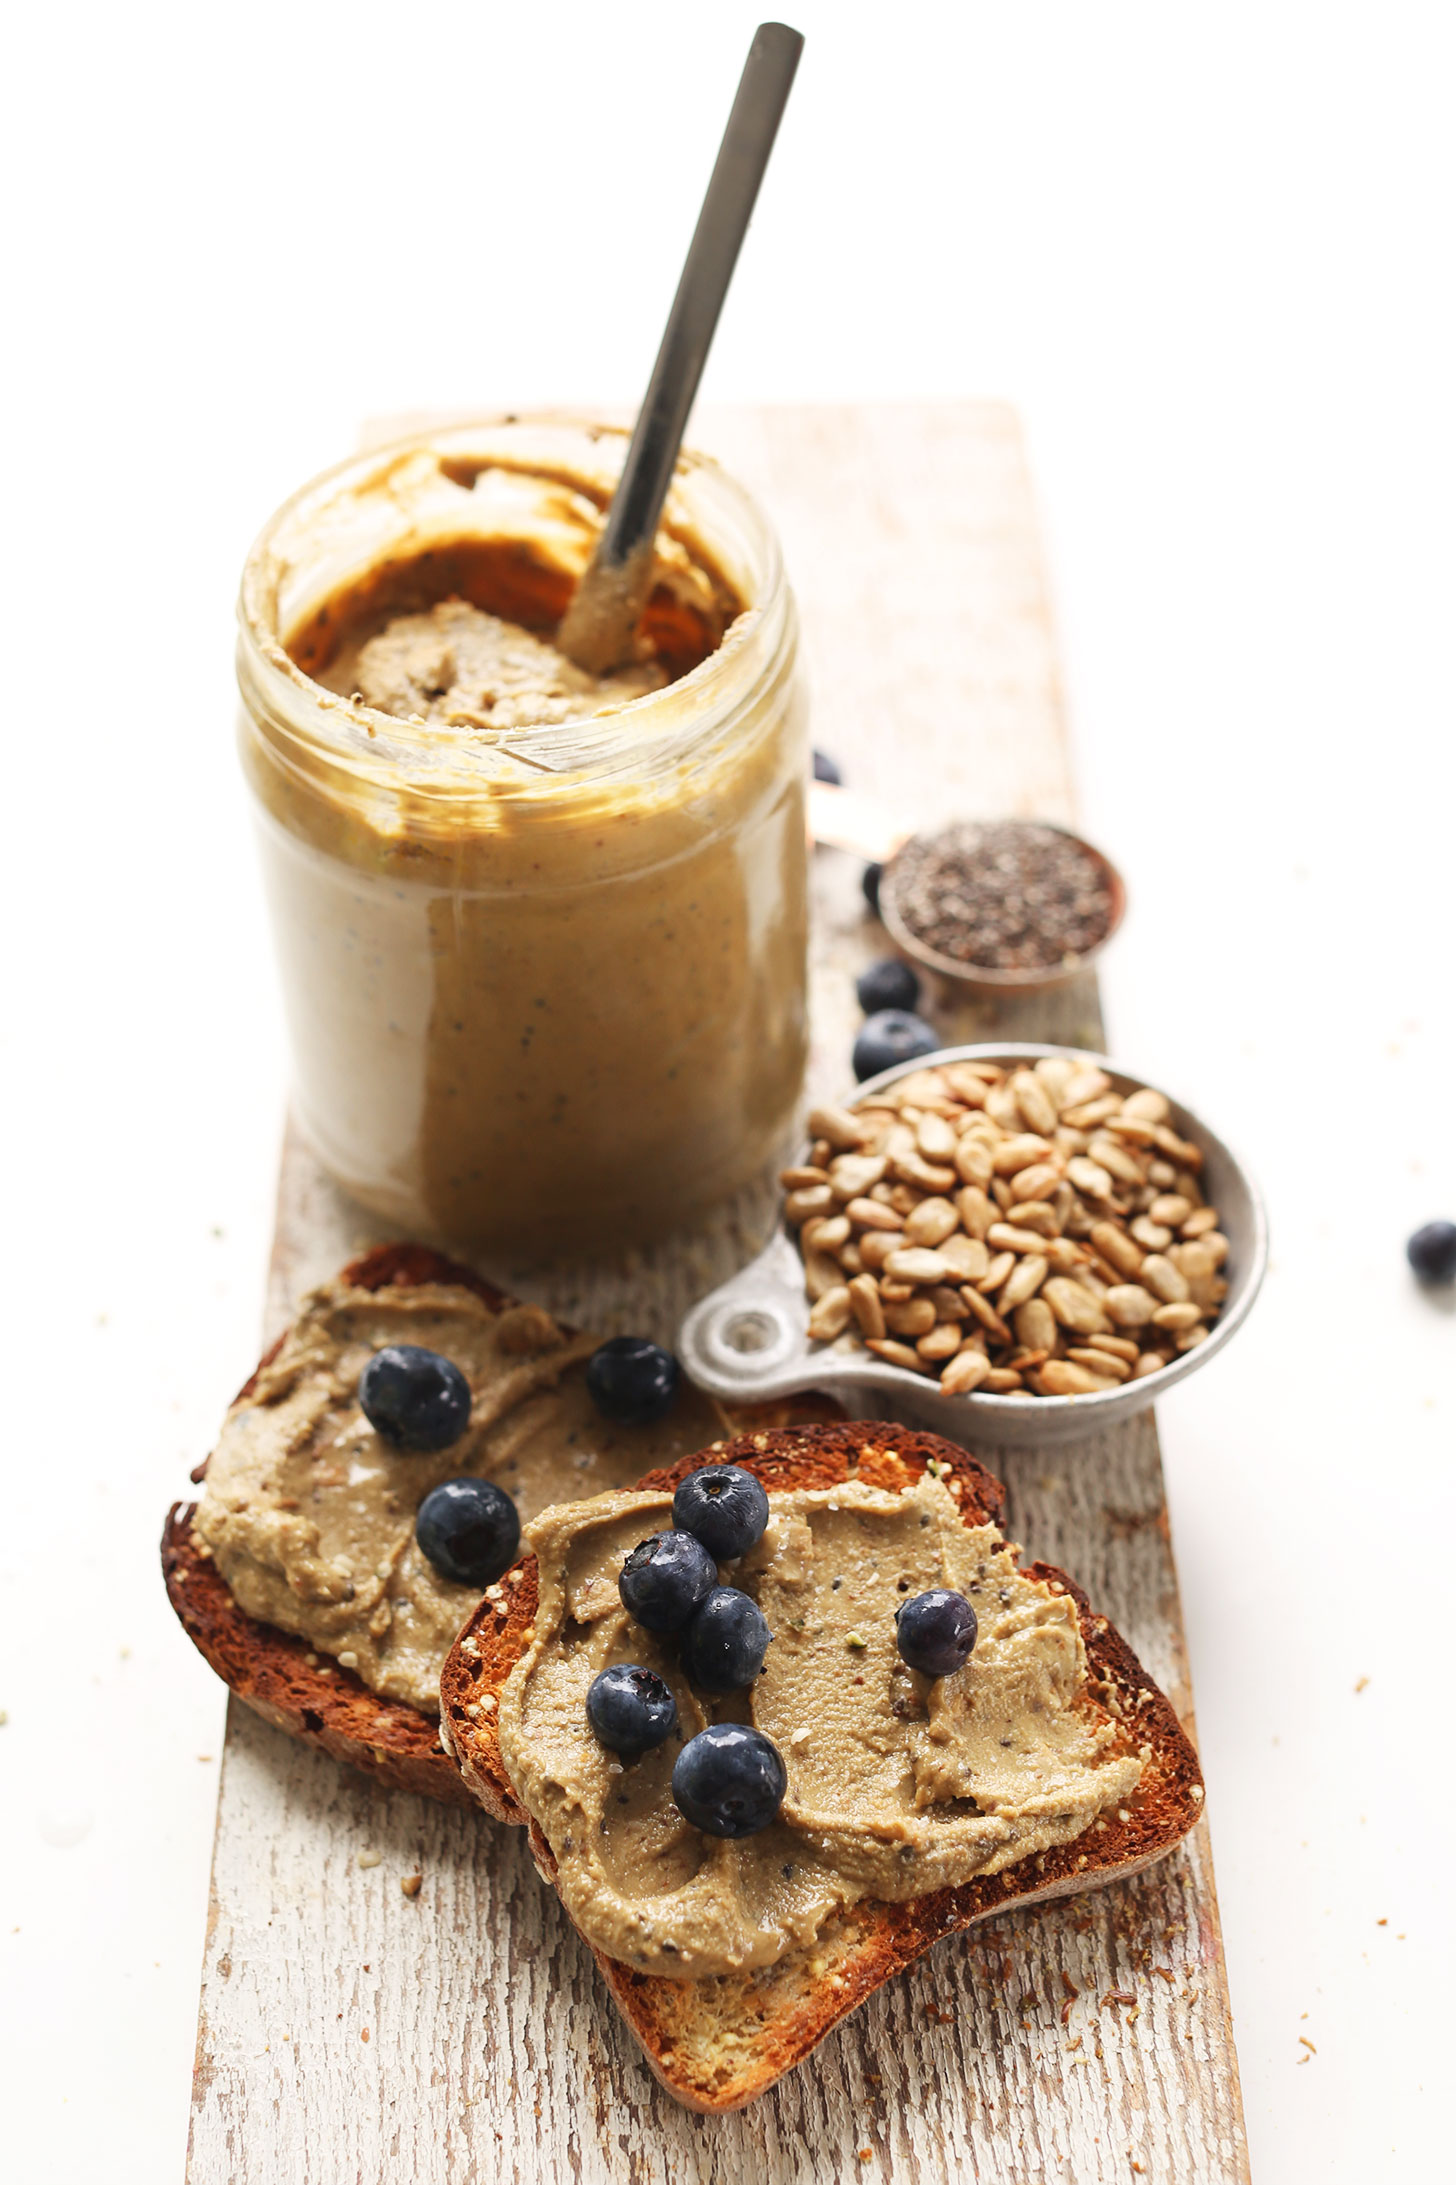 Slices of gluten-free toast topped with homemade Sunflower Seed Butter and blueberries